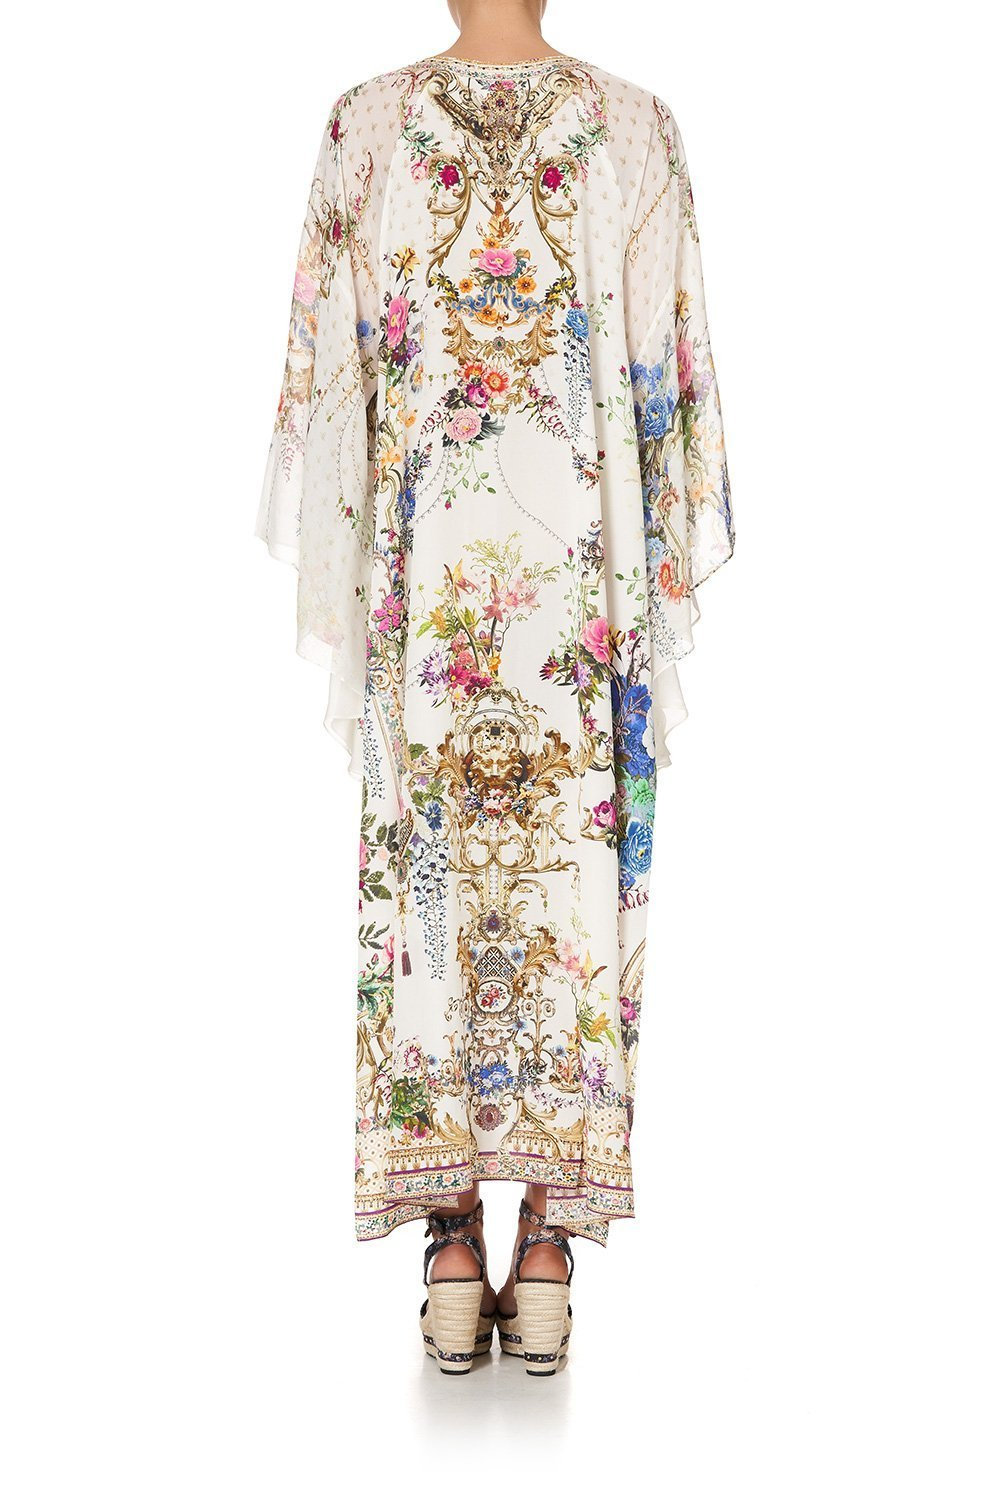 CAMILLA_00011115_BY_THE_MEADOW_LONG_RAGLAN_SLEEVE_FLARED_KAFTAN_6_1024x1024@2x